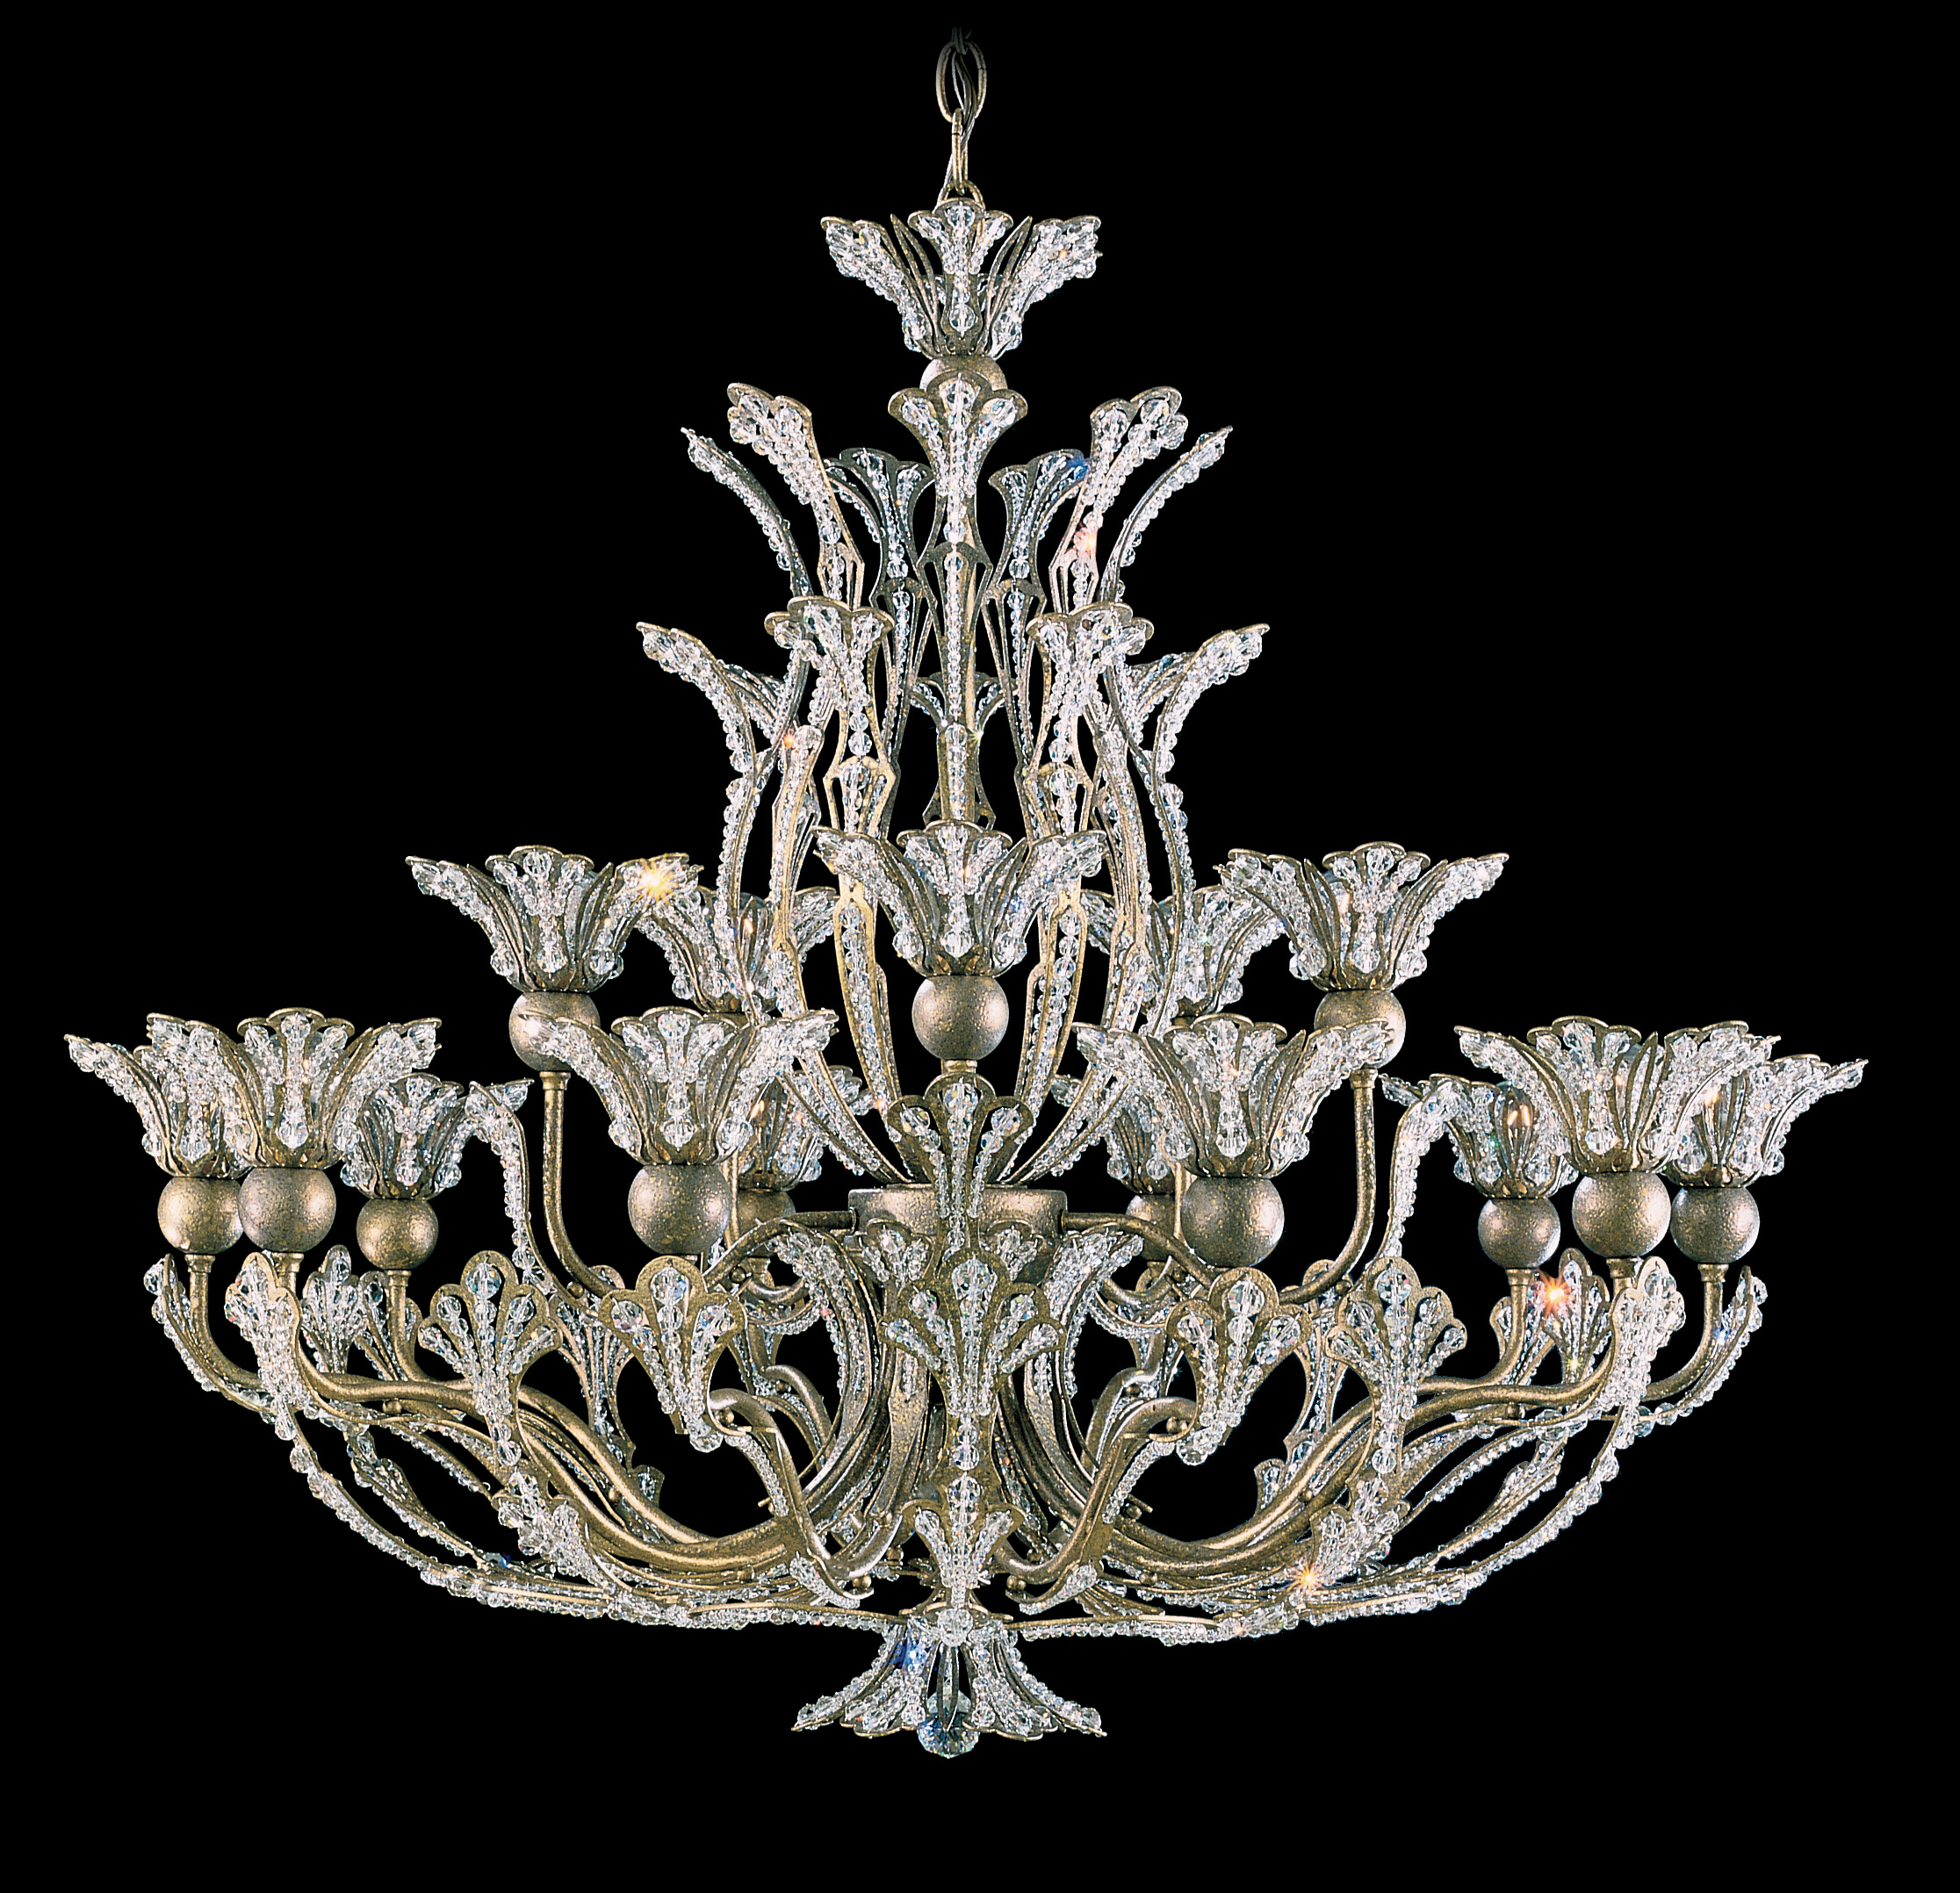 Crystal Chandelier Schonbek, Furniture by ABD